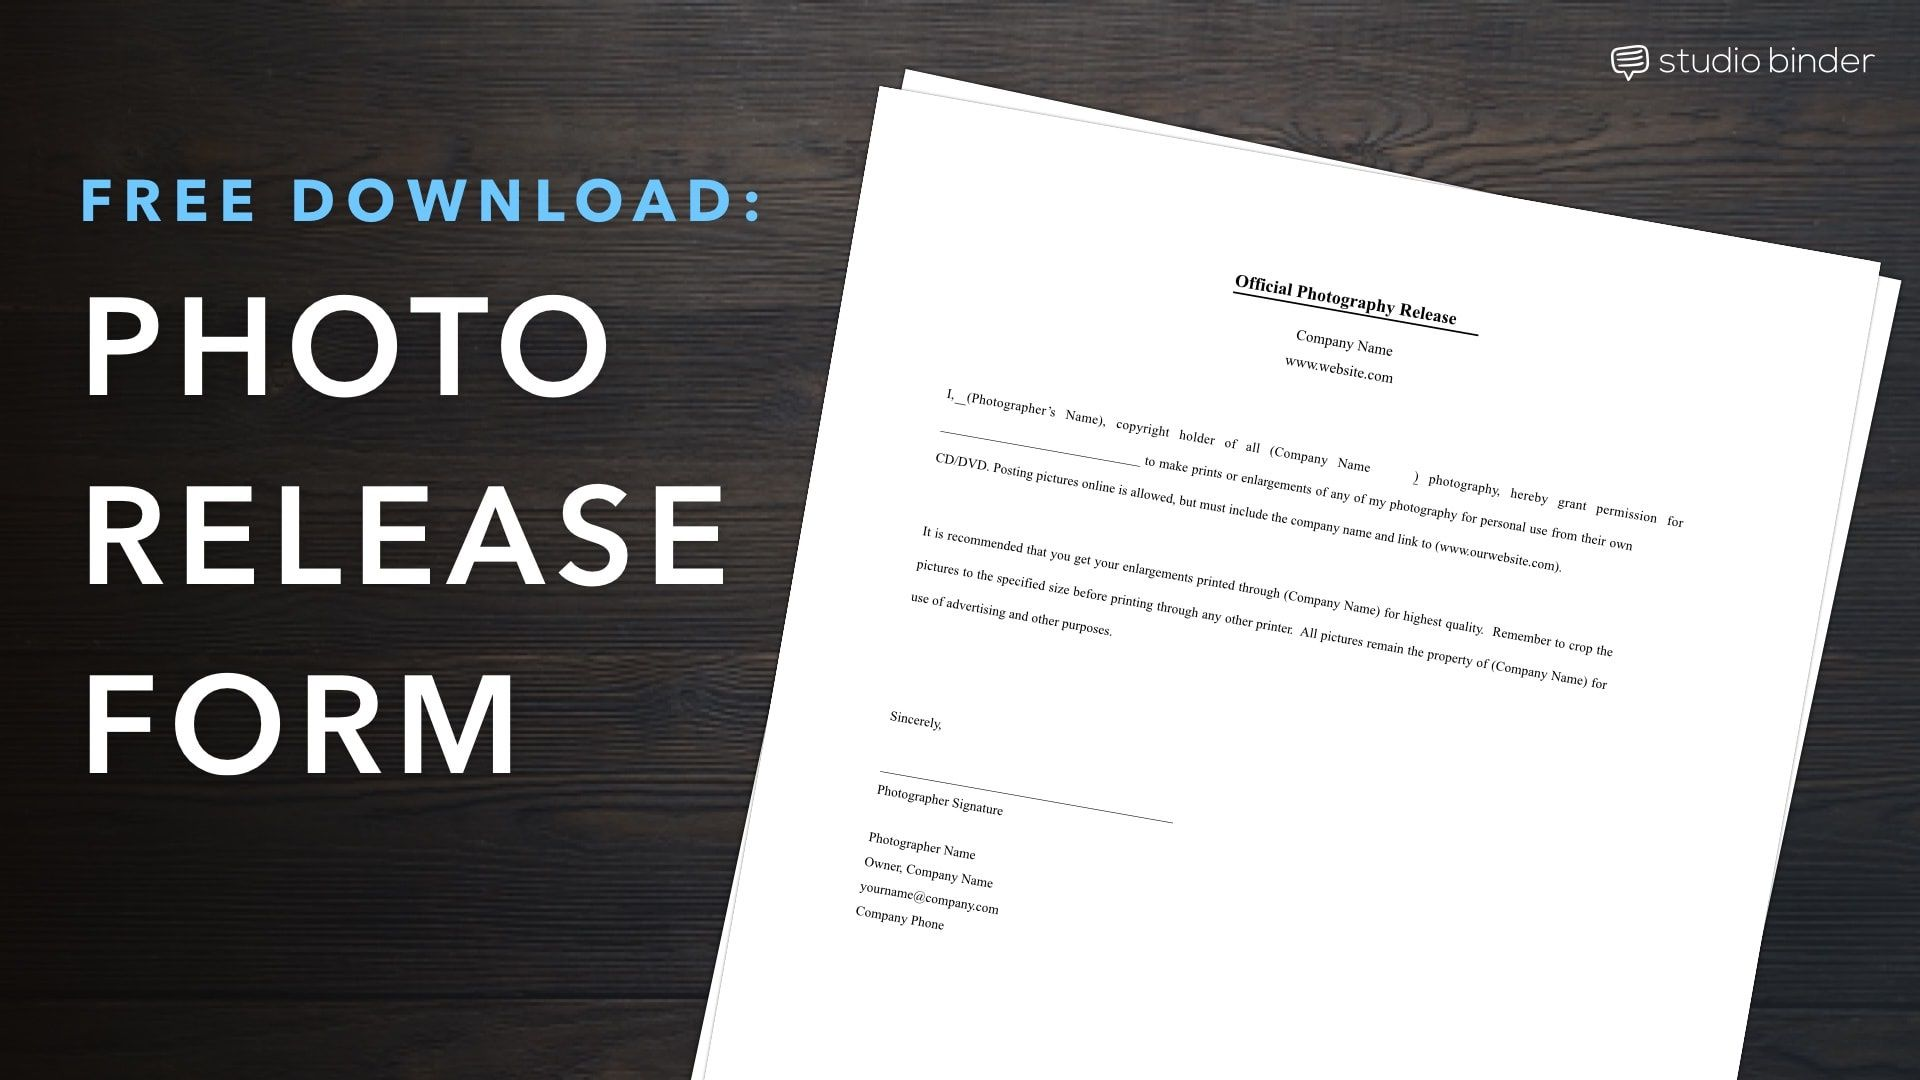 003 Best Photo Release Form Template Free Image  Print Order And Video CanadaFull